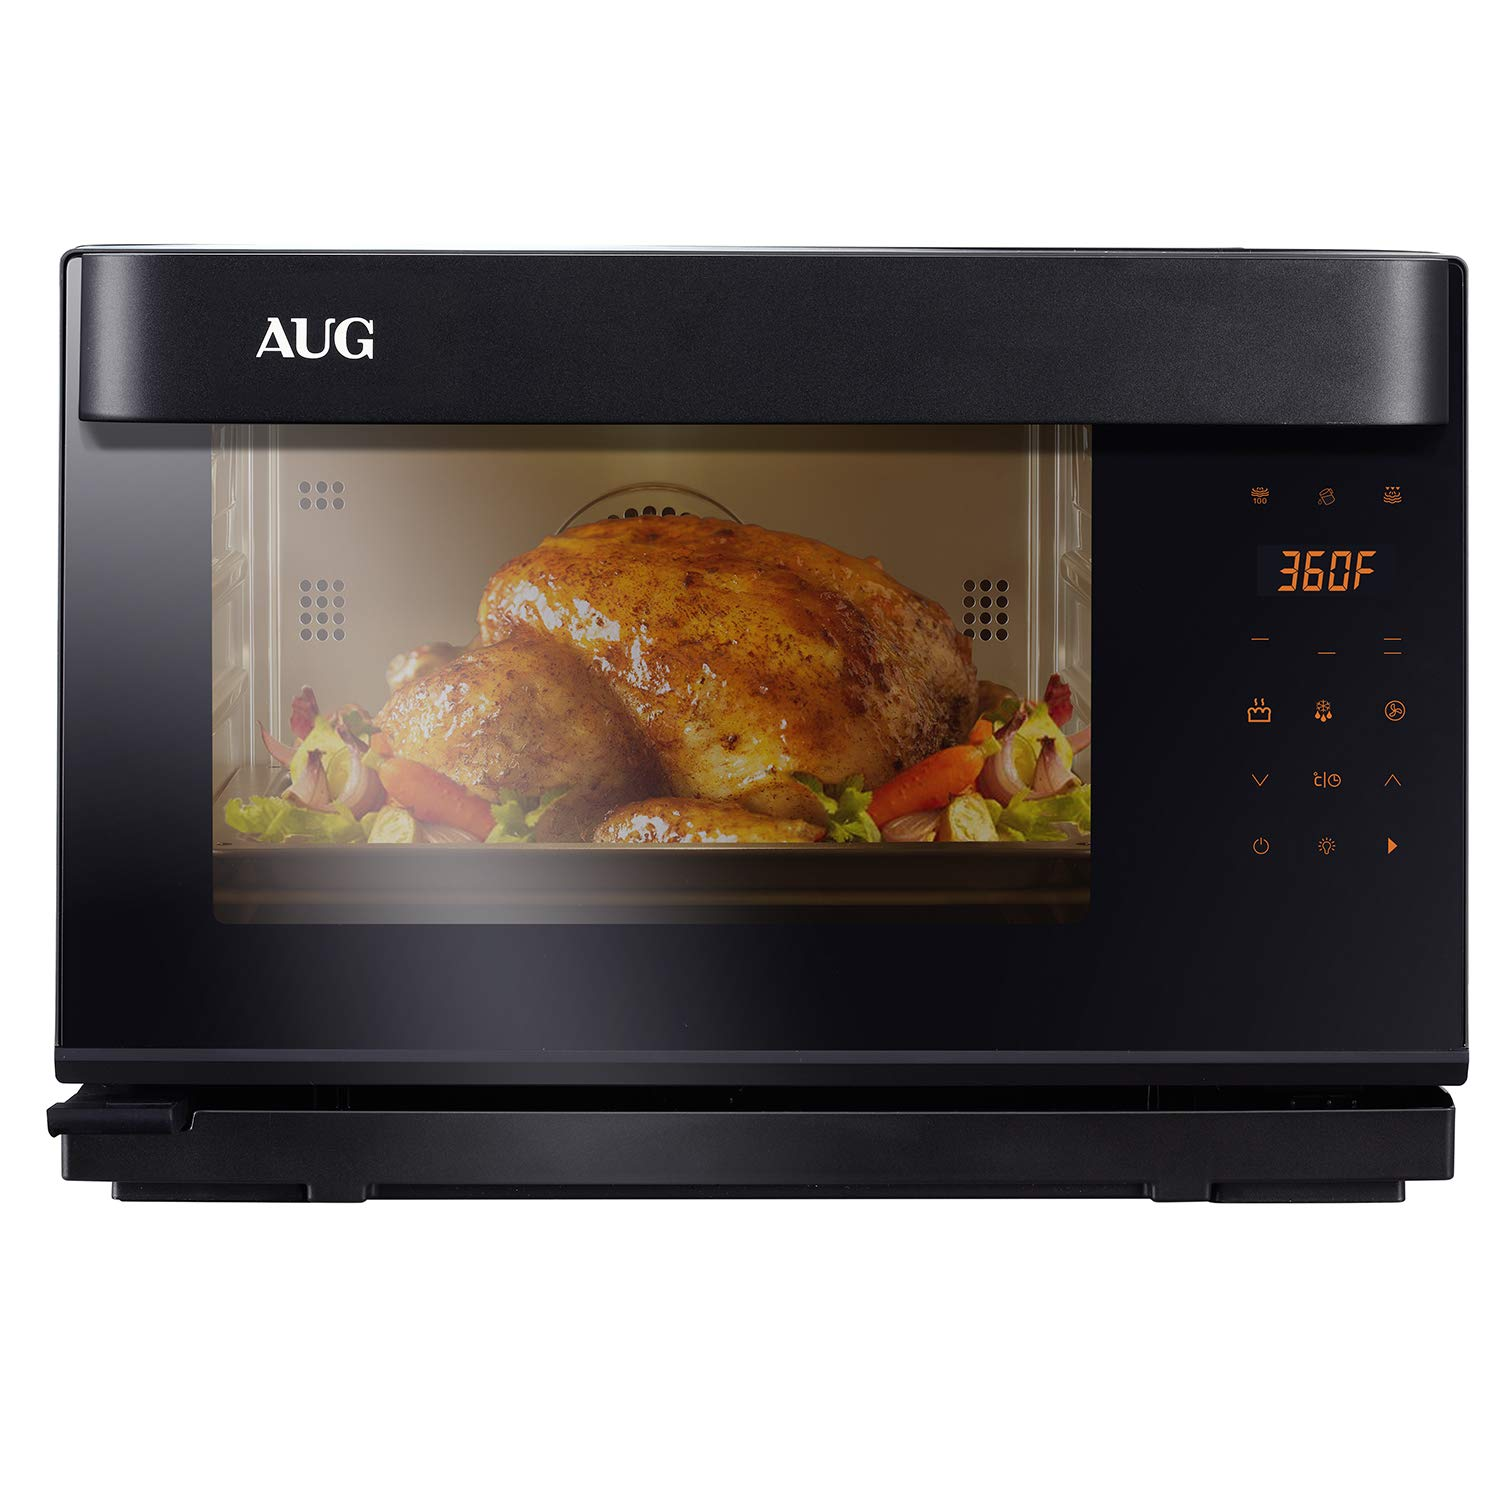 AUG Convection Steam Grill Oven, 0.9 Cu. Ft. Smart Household Countertop Combi Steamer with 8 Cooking Modes, Matte Black Stainless Steel by AUG (Image #1)